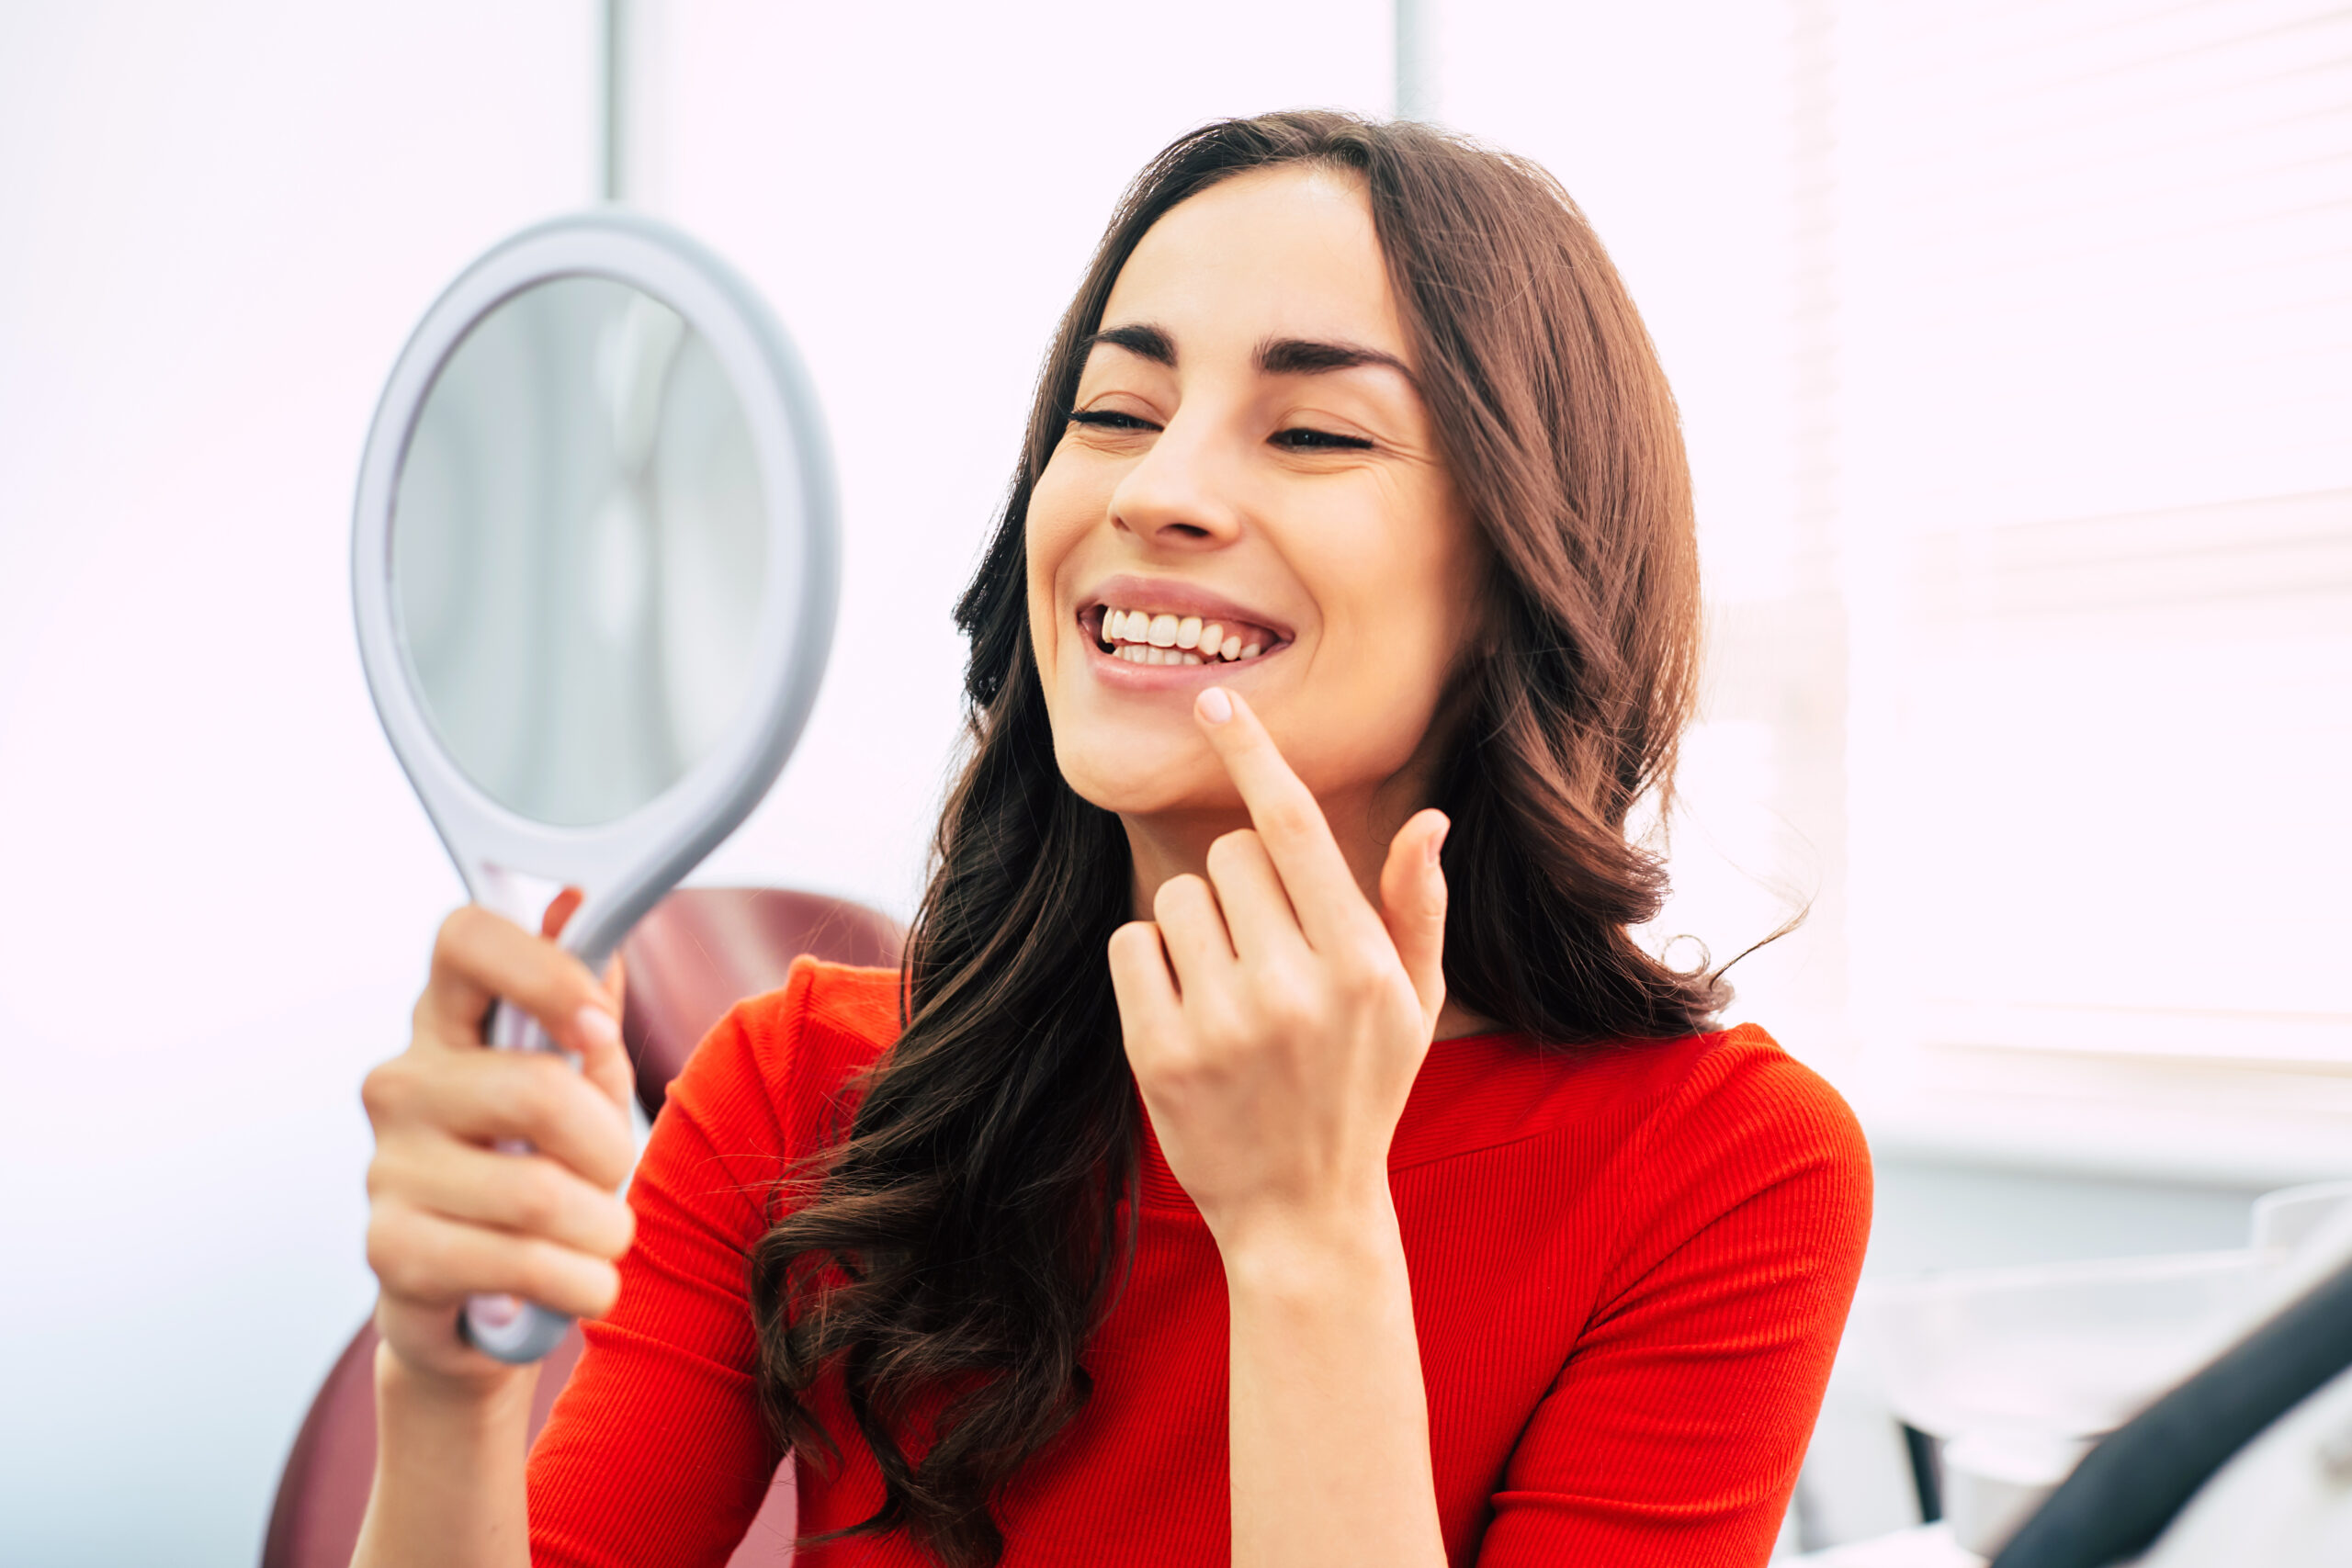 8 Great Ways to Improve Your Smile | Family Dentist Near Me